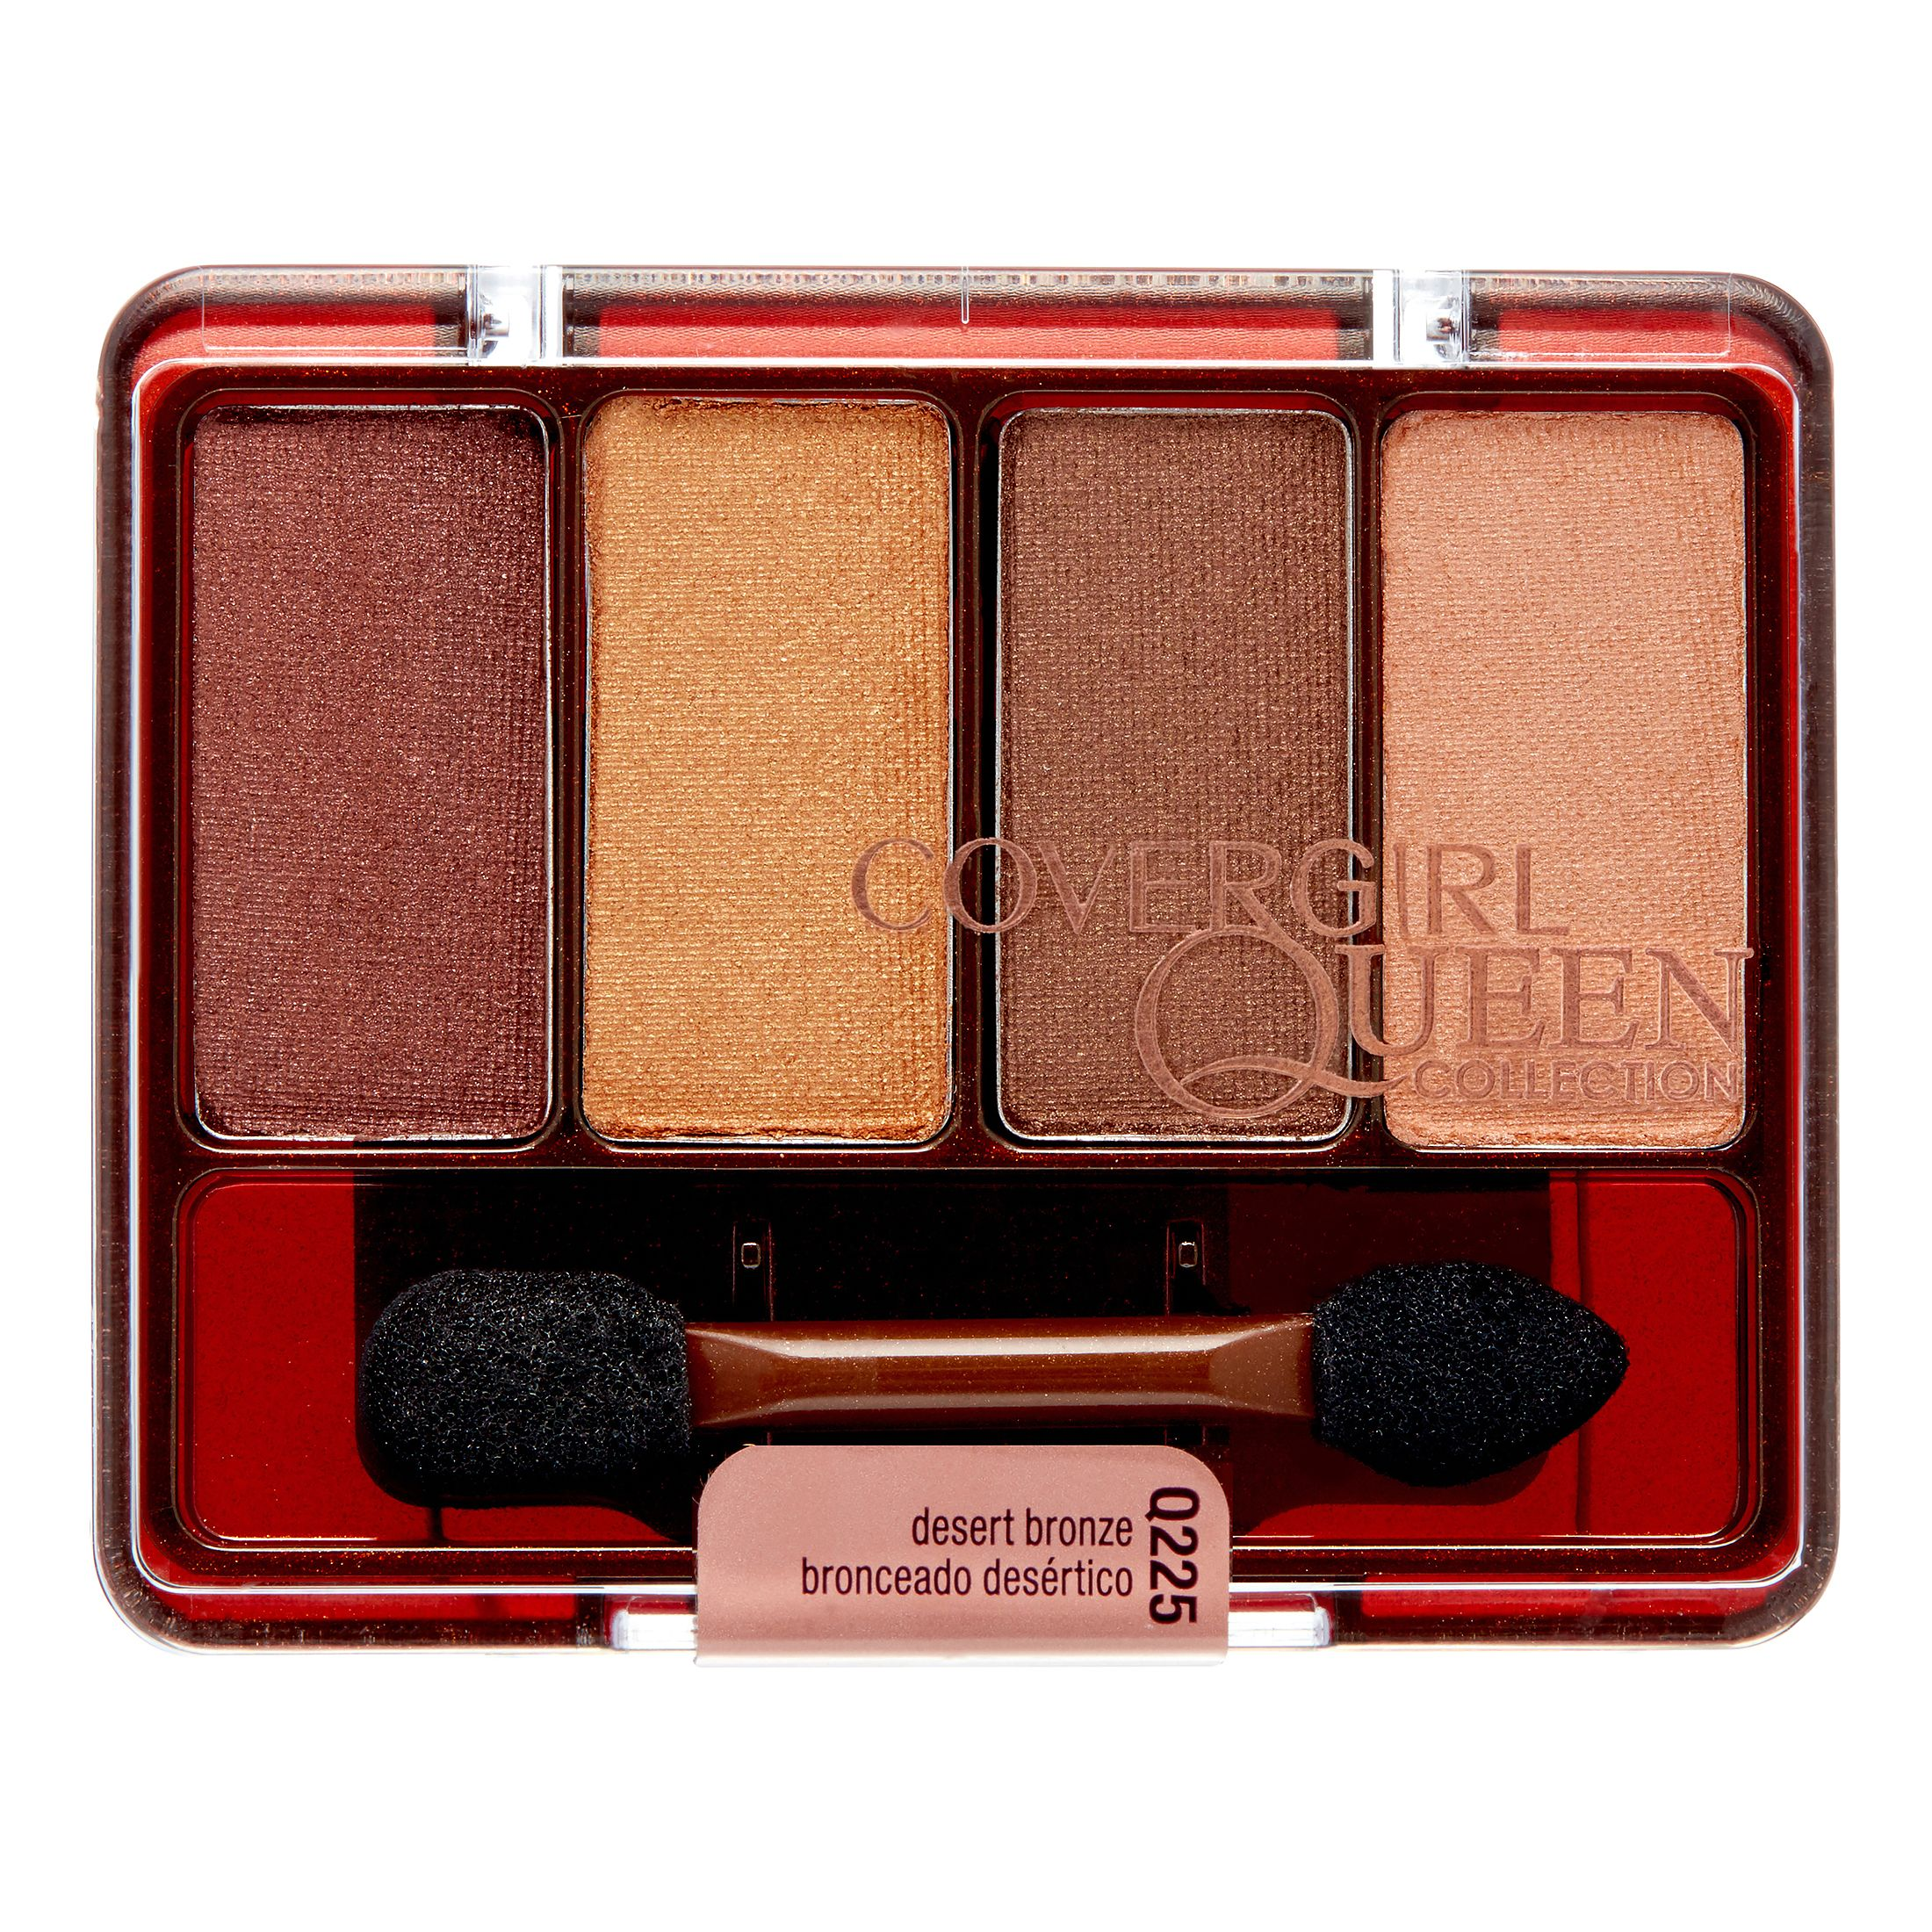 COVERGIRL Queen Collection Eyeshadow Quad, Q225 Desert Bronze